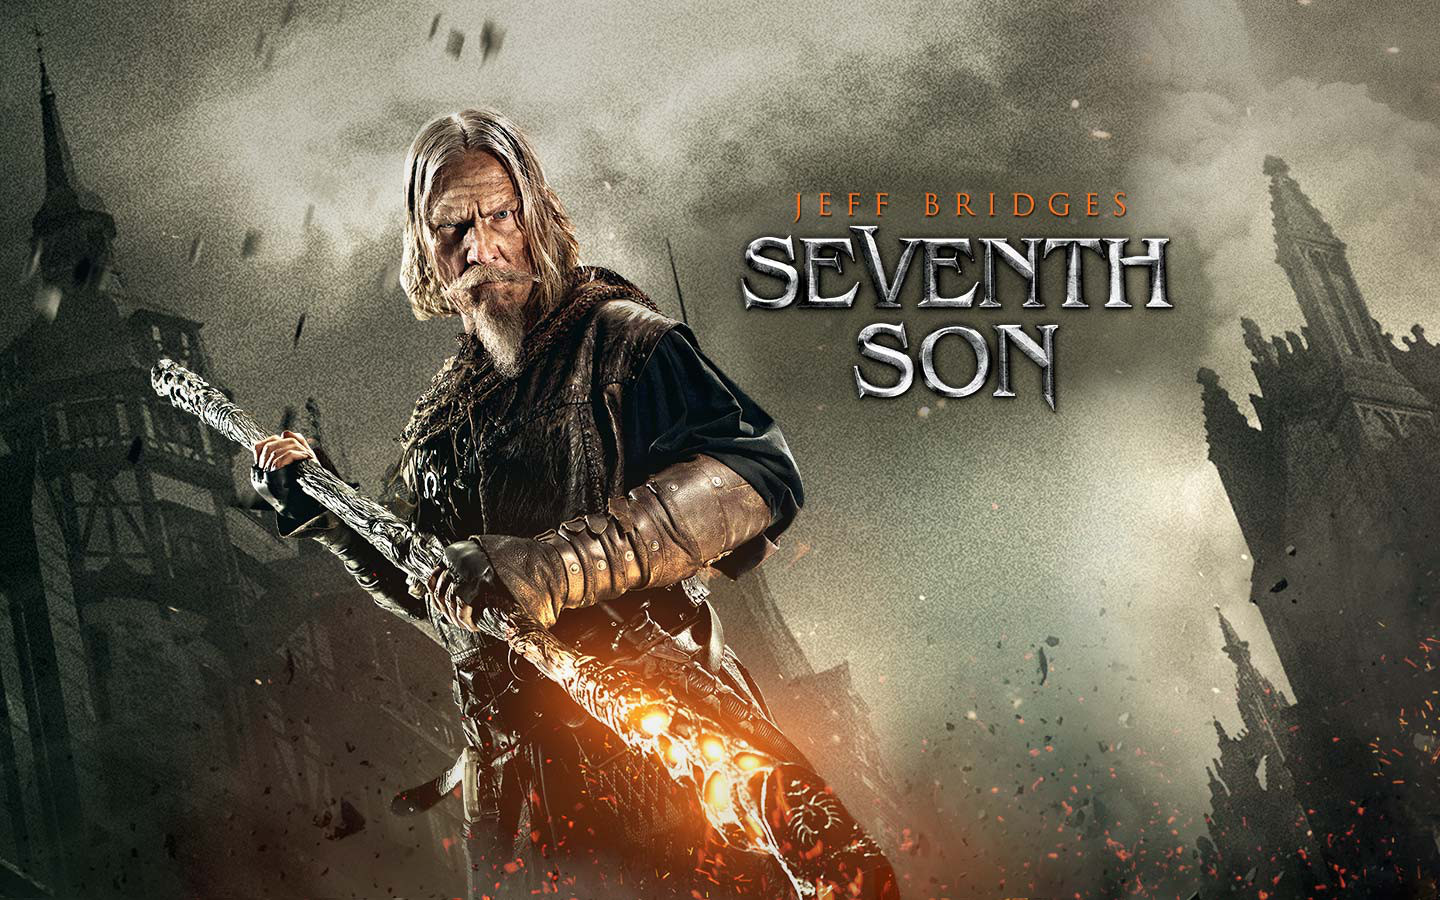 exciting-international-trailer-for-seventh-son-fantasy-action-film